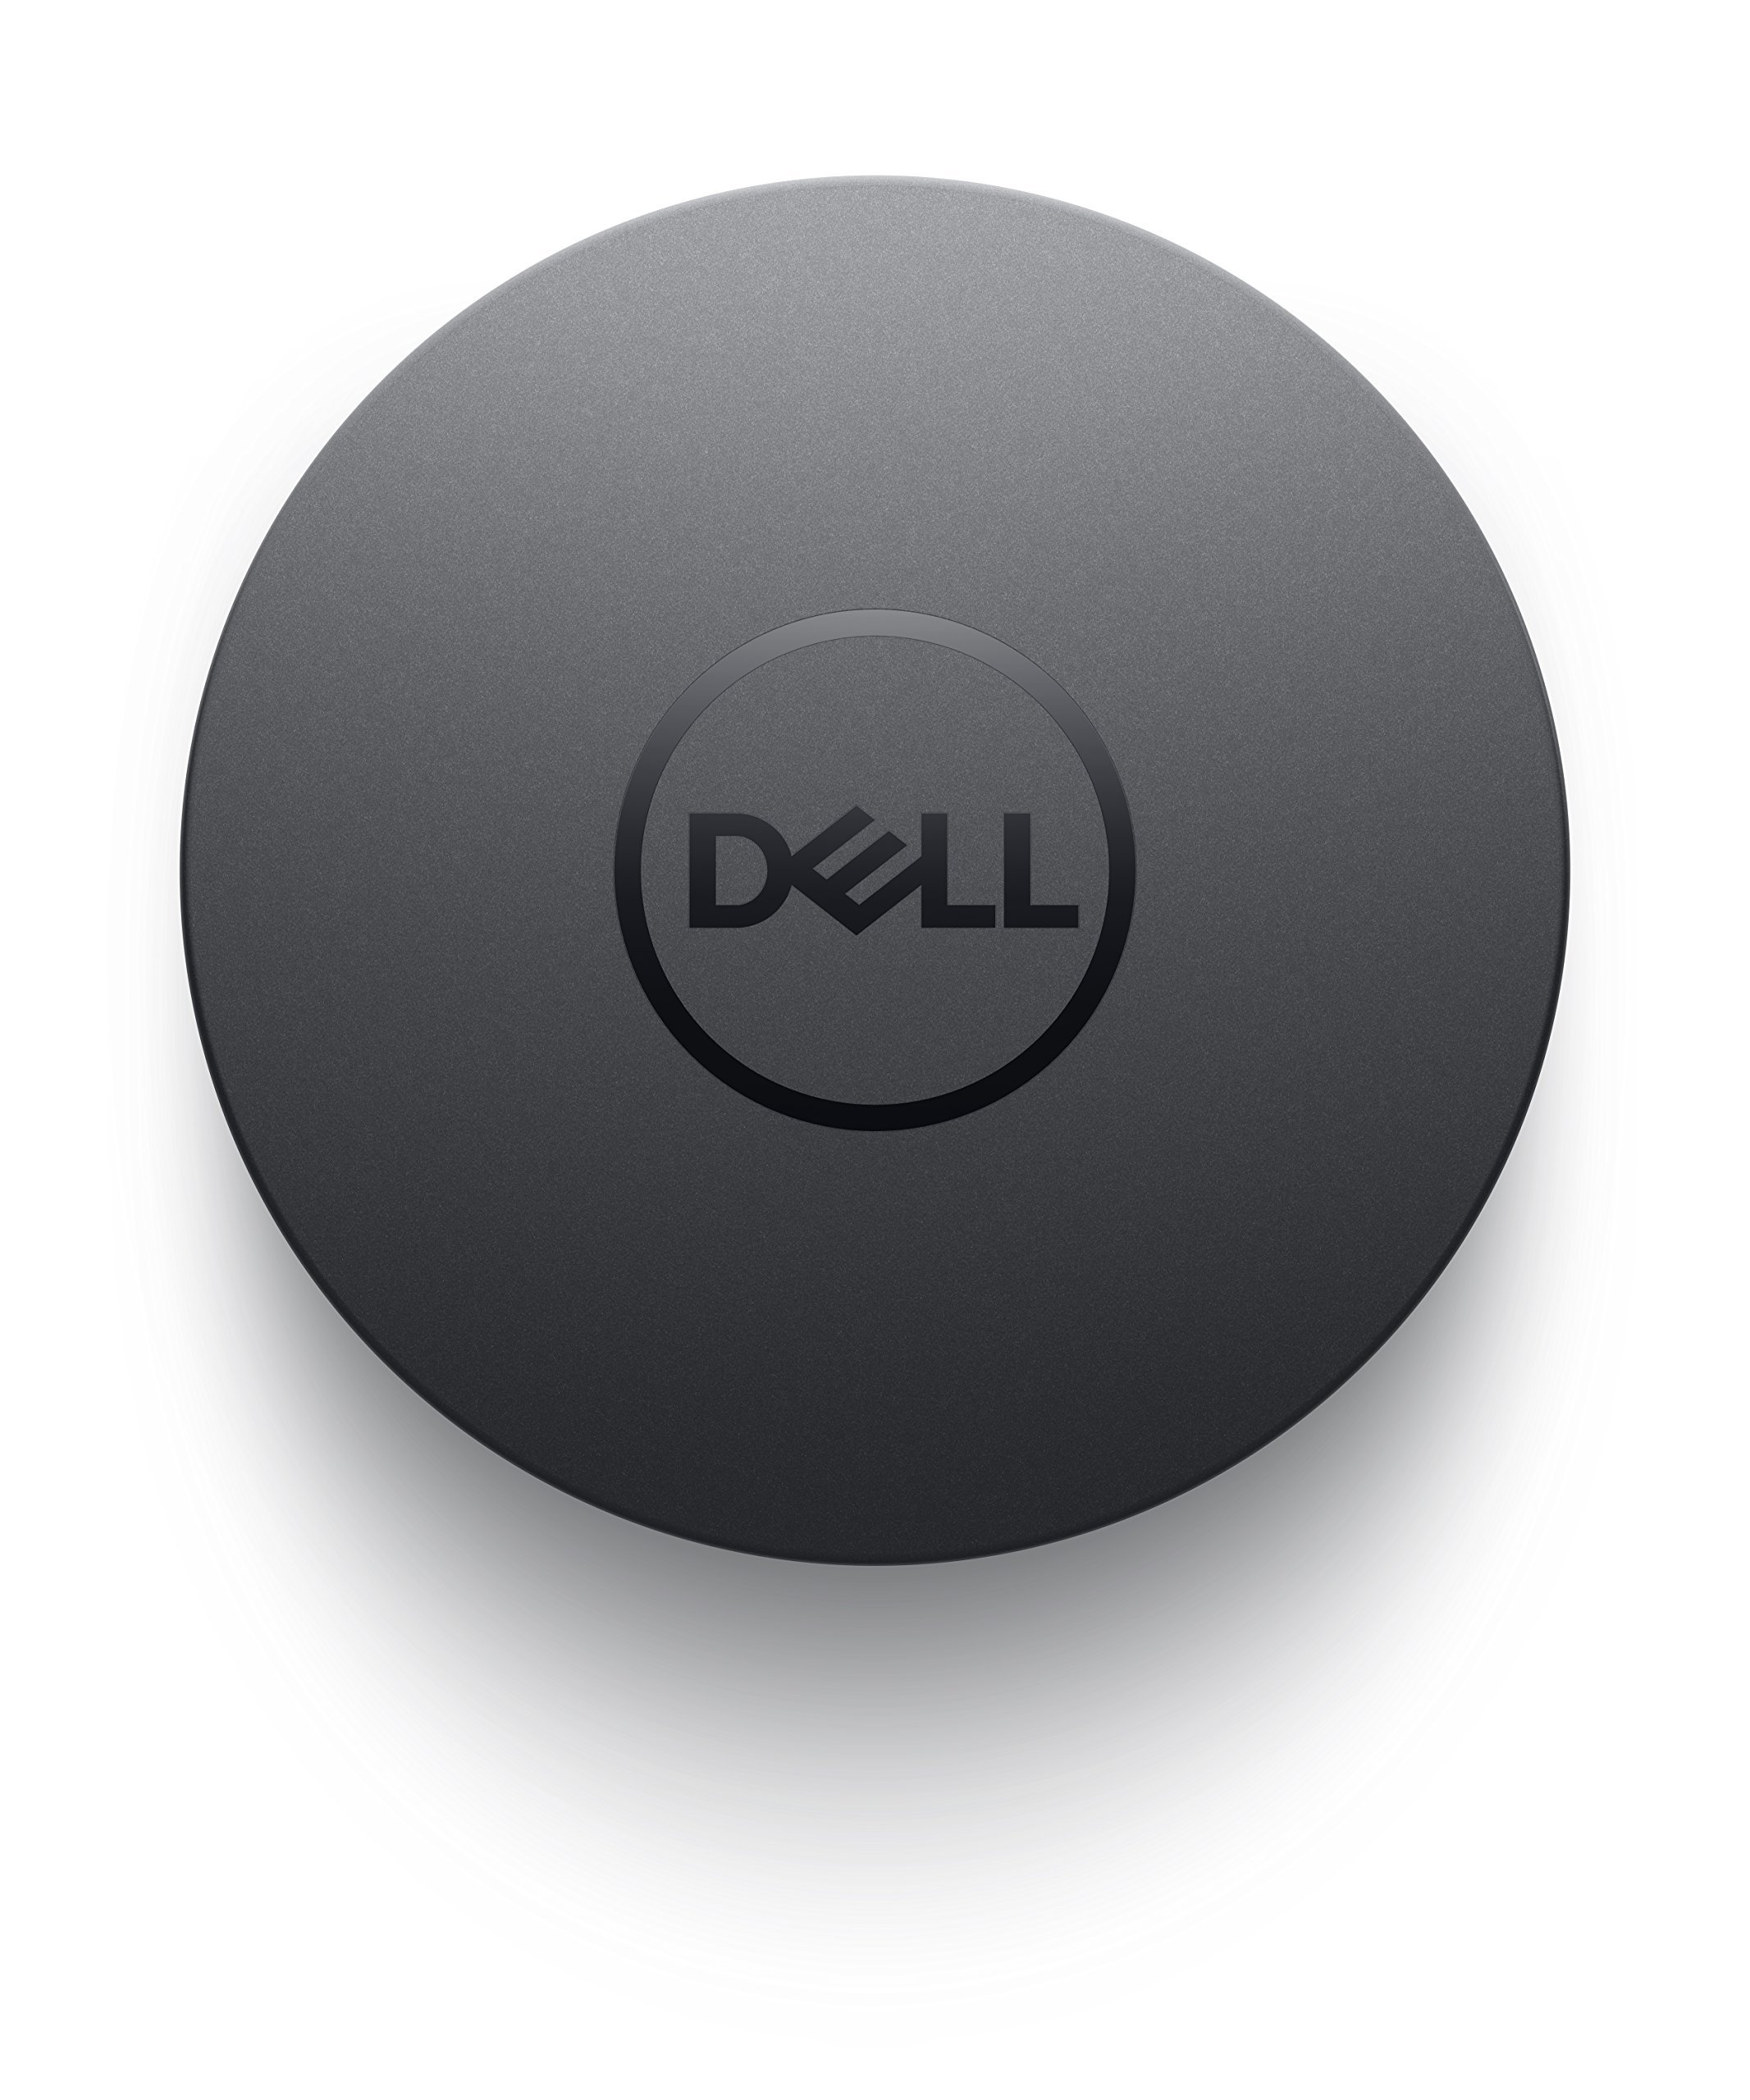 USB-C Mobile Adapter - DA300 (Renewed) by Dell (Image #1)